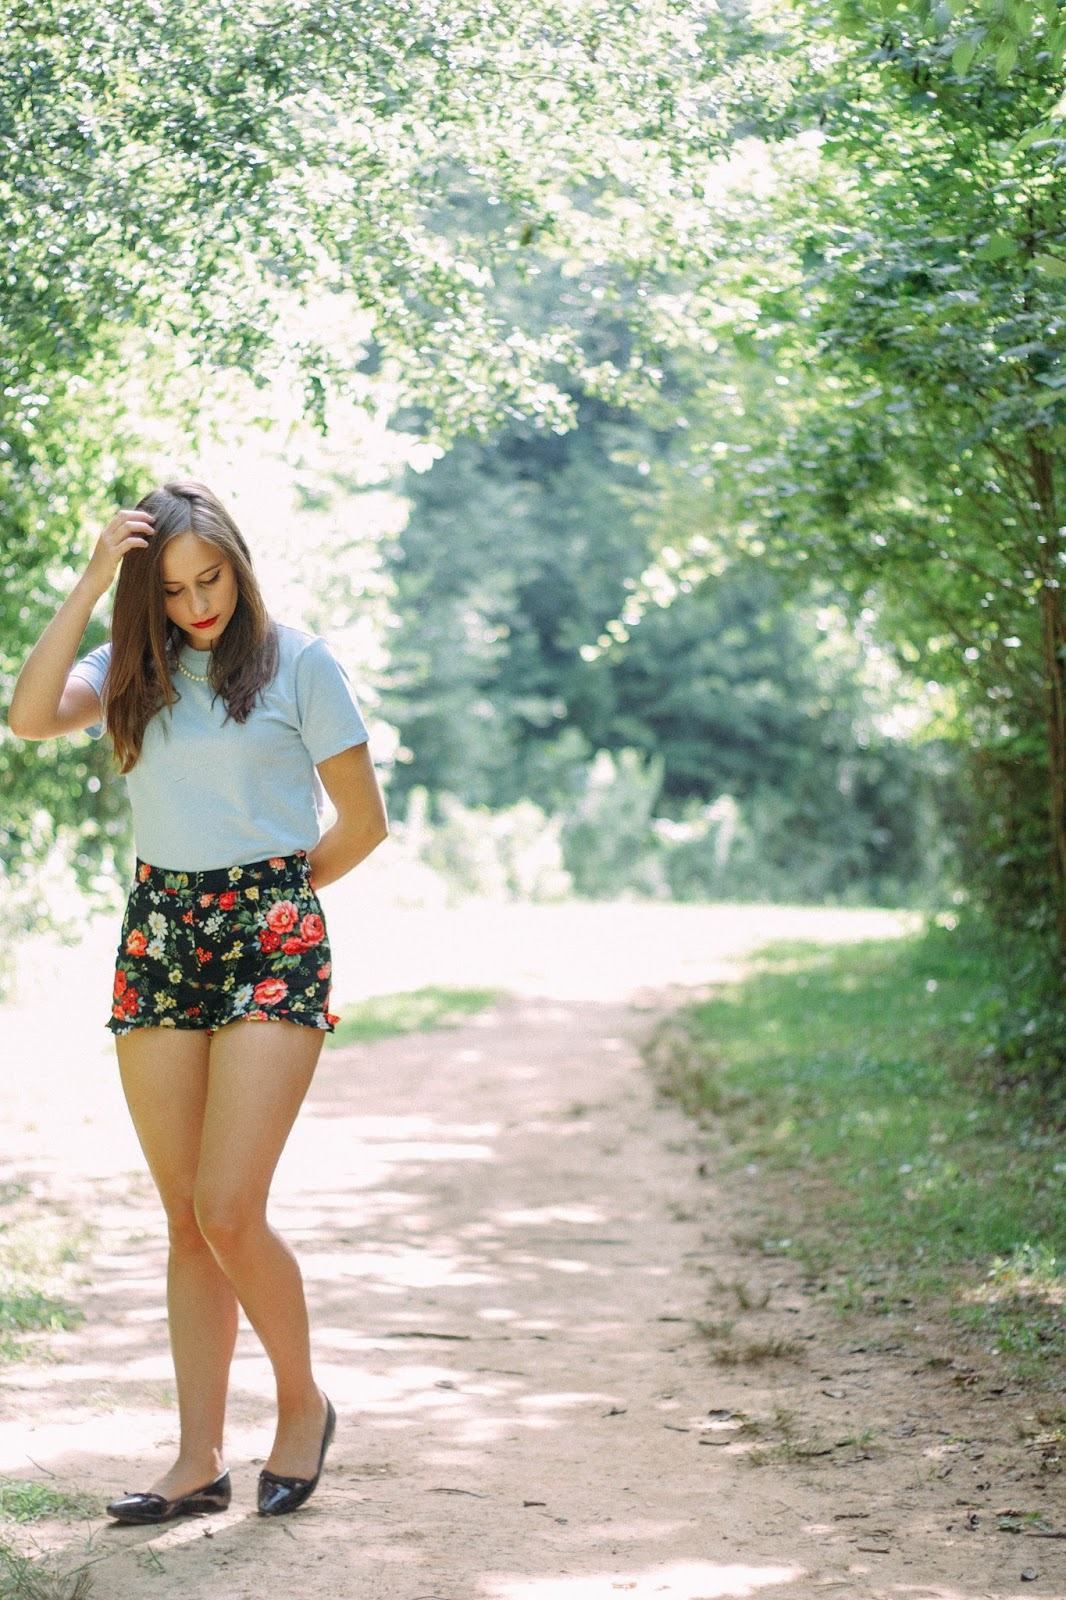 style, vintage, retro, vintage style, retro style, floral high waisted shorts, forever 21, girly outfit, classy style, summer, fashion blogger, personal style blogger, film blogger, film, photography, whimsical, taylor swift style, screenwriting,